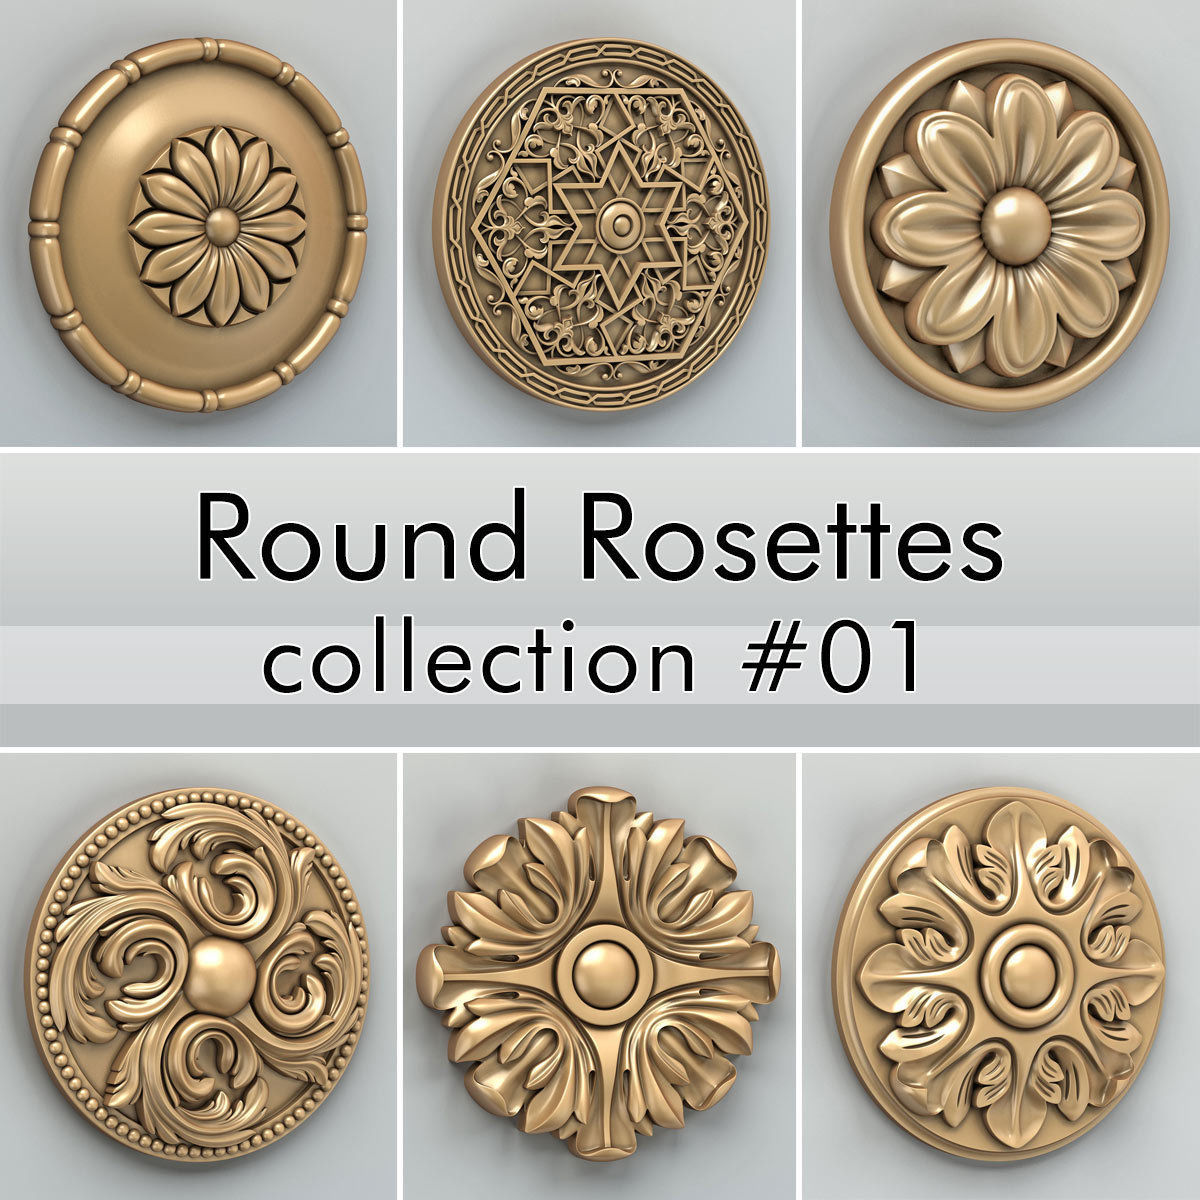 Round Rosettes collection 01